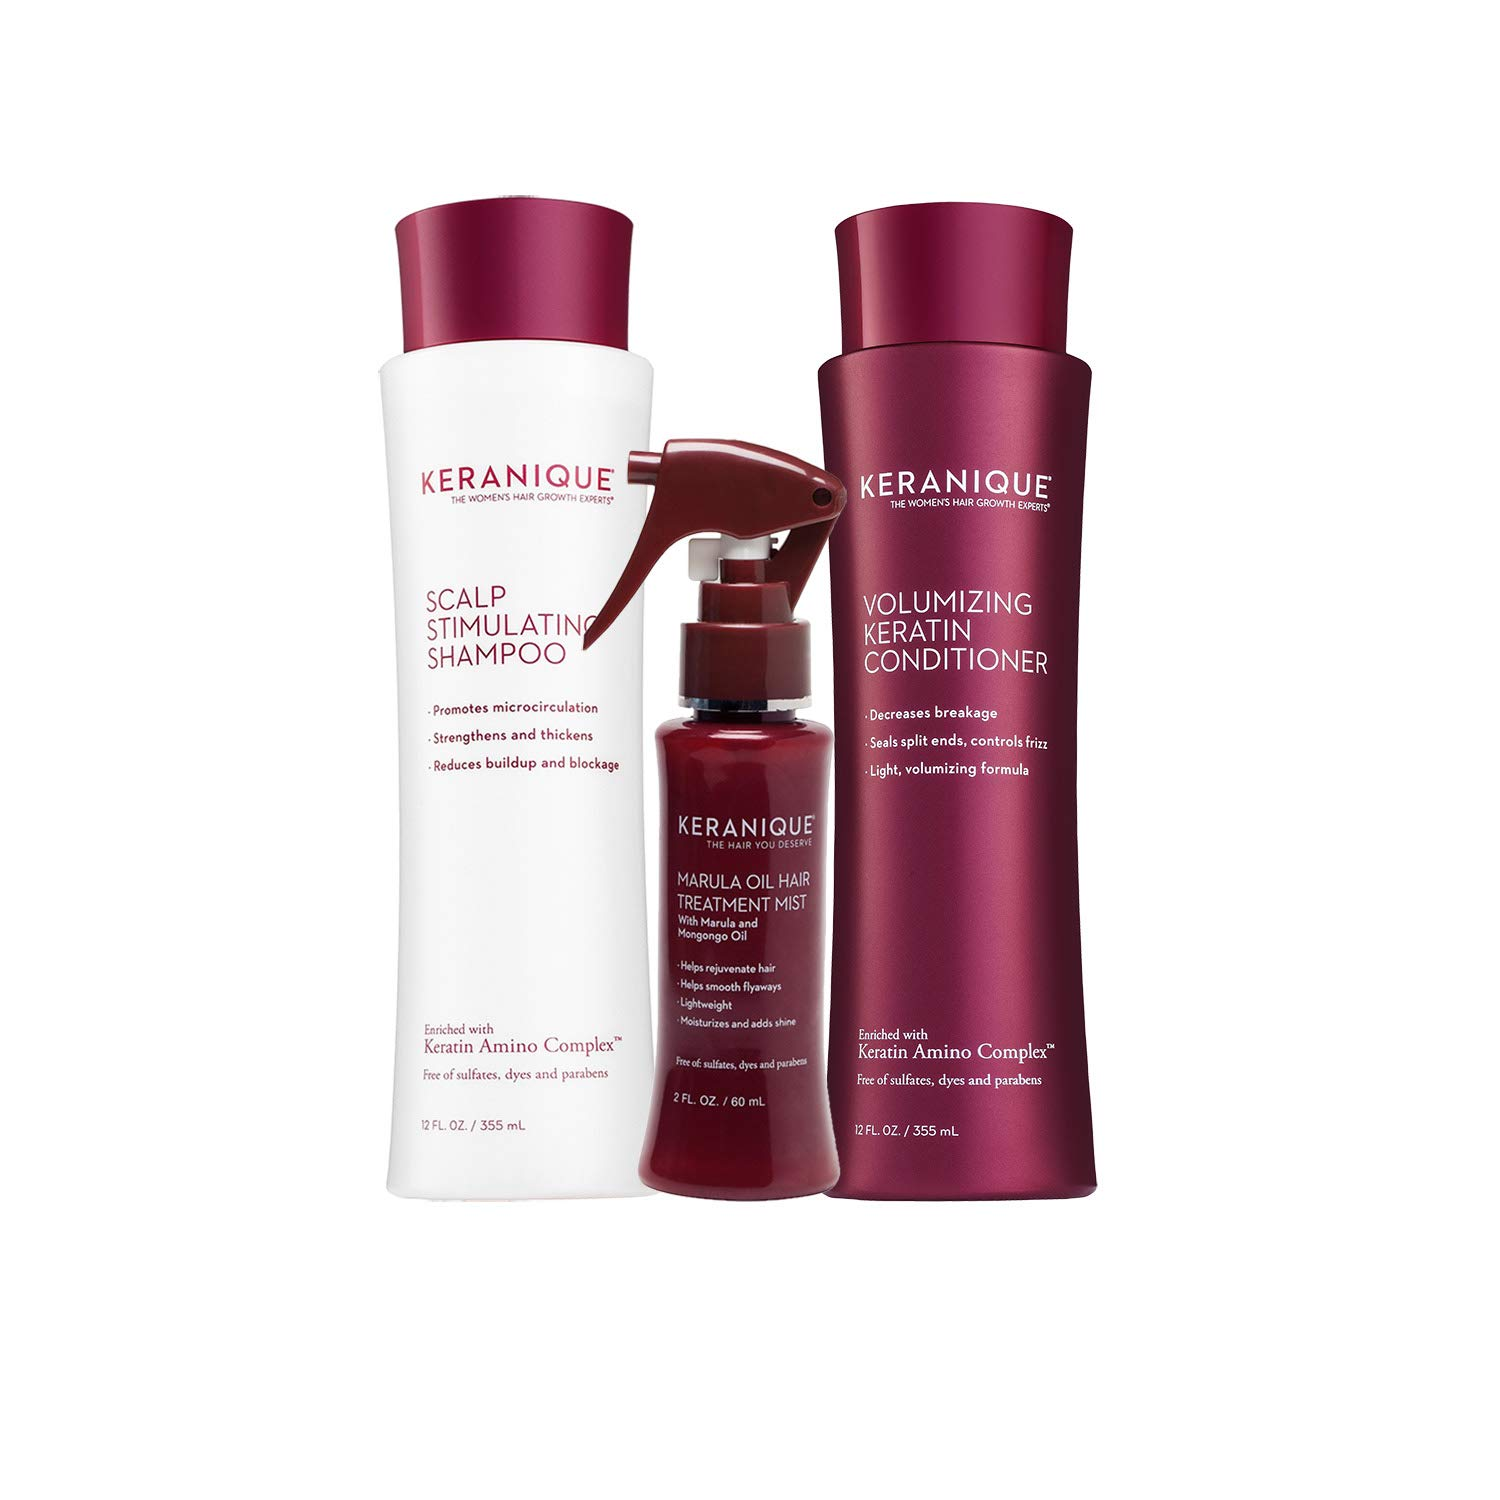 Keranique 60 Day Marula Hair Kit   Shampoo, Conditioner, and Marula Oil Hair Mist   Moisturizes and Adds Shine   Free of Sulfates, Dyes and Parabens